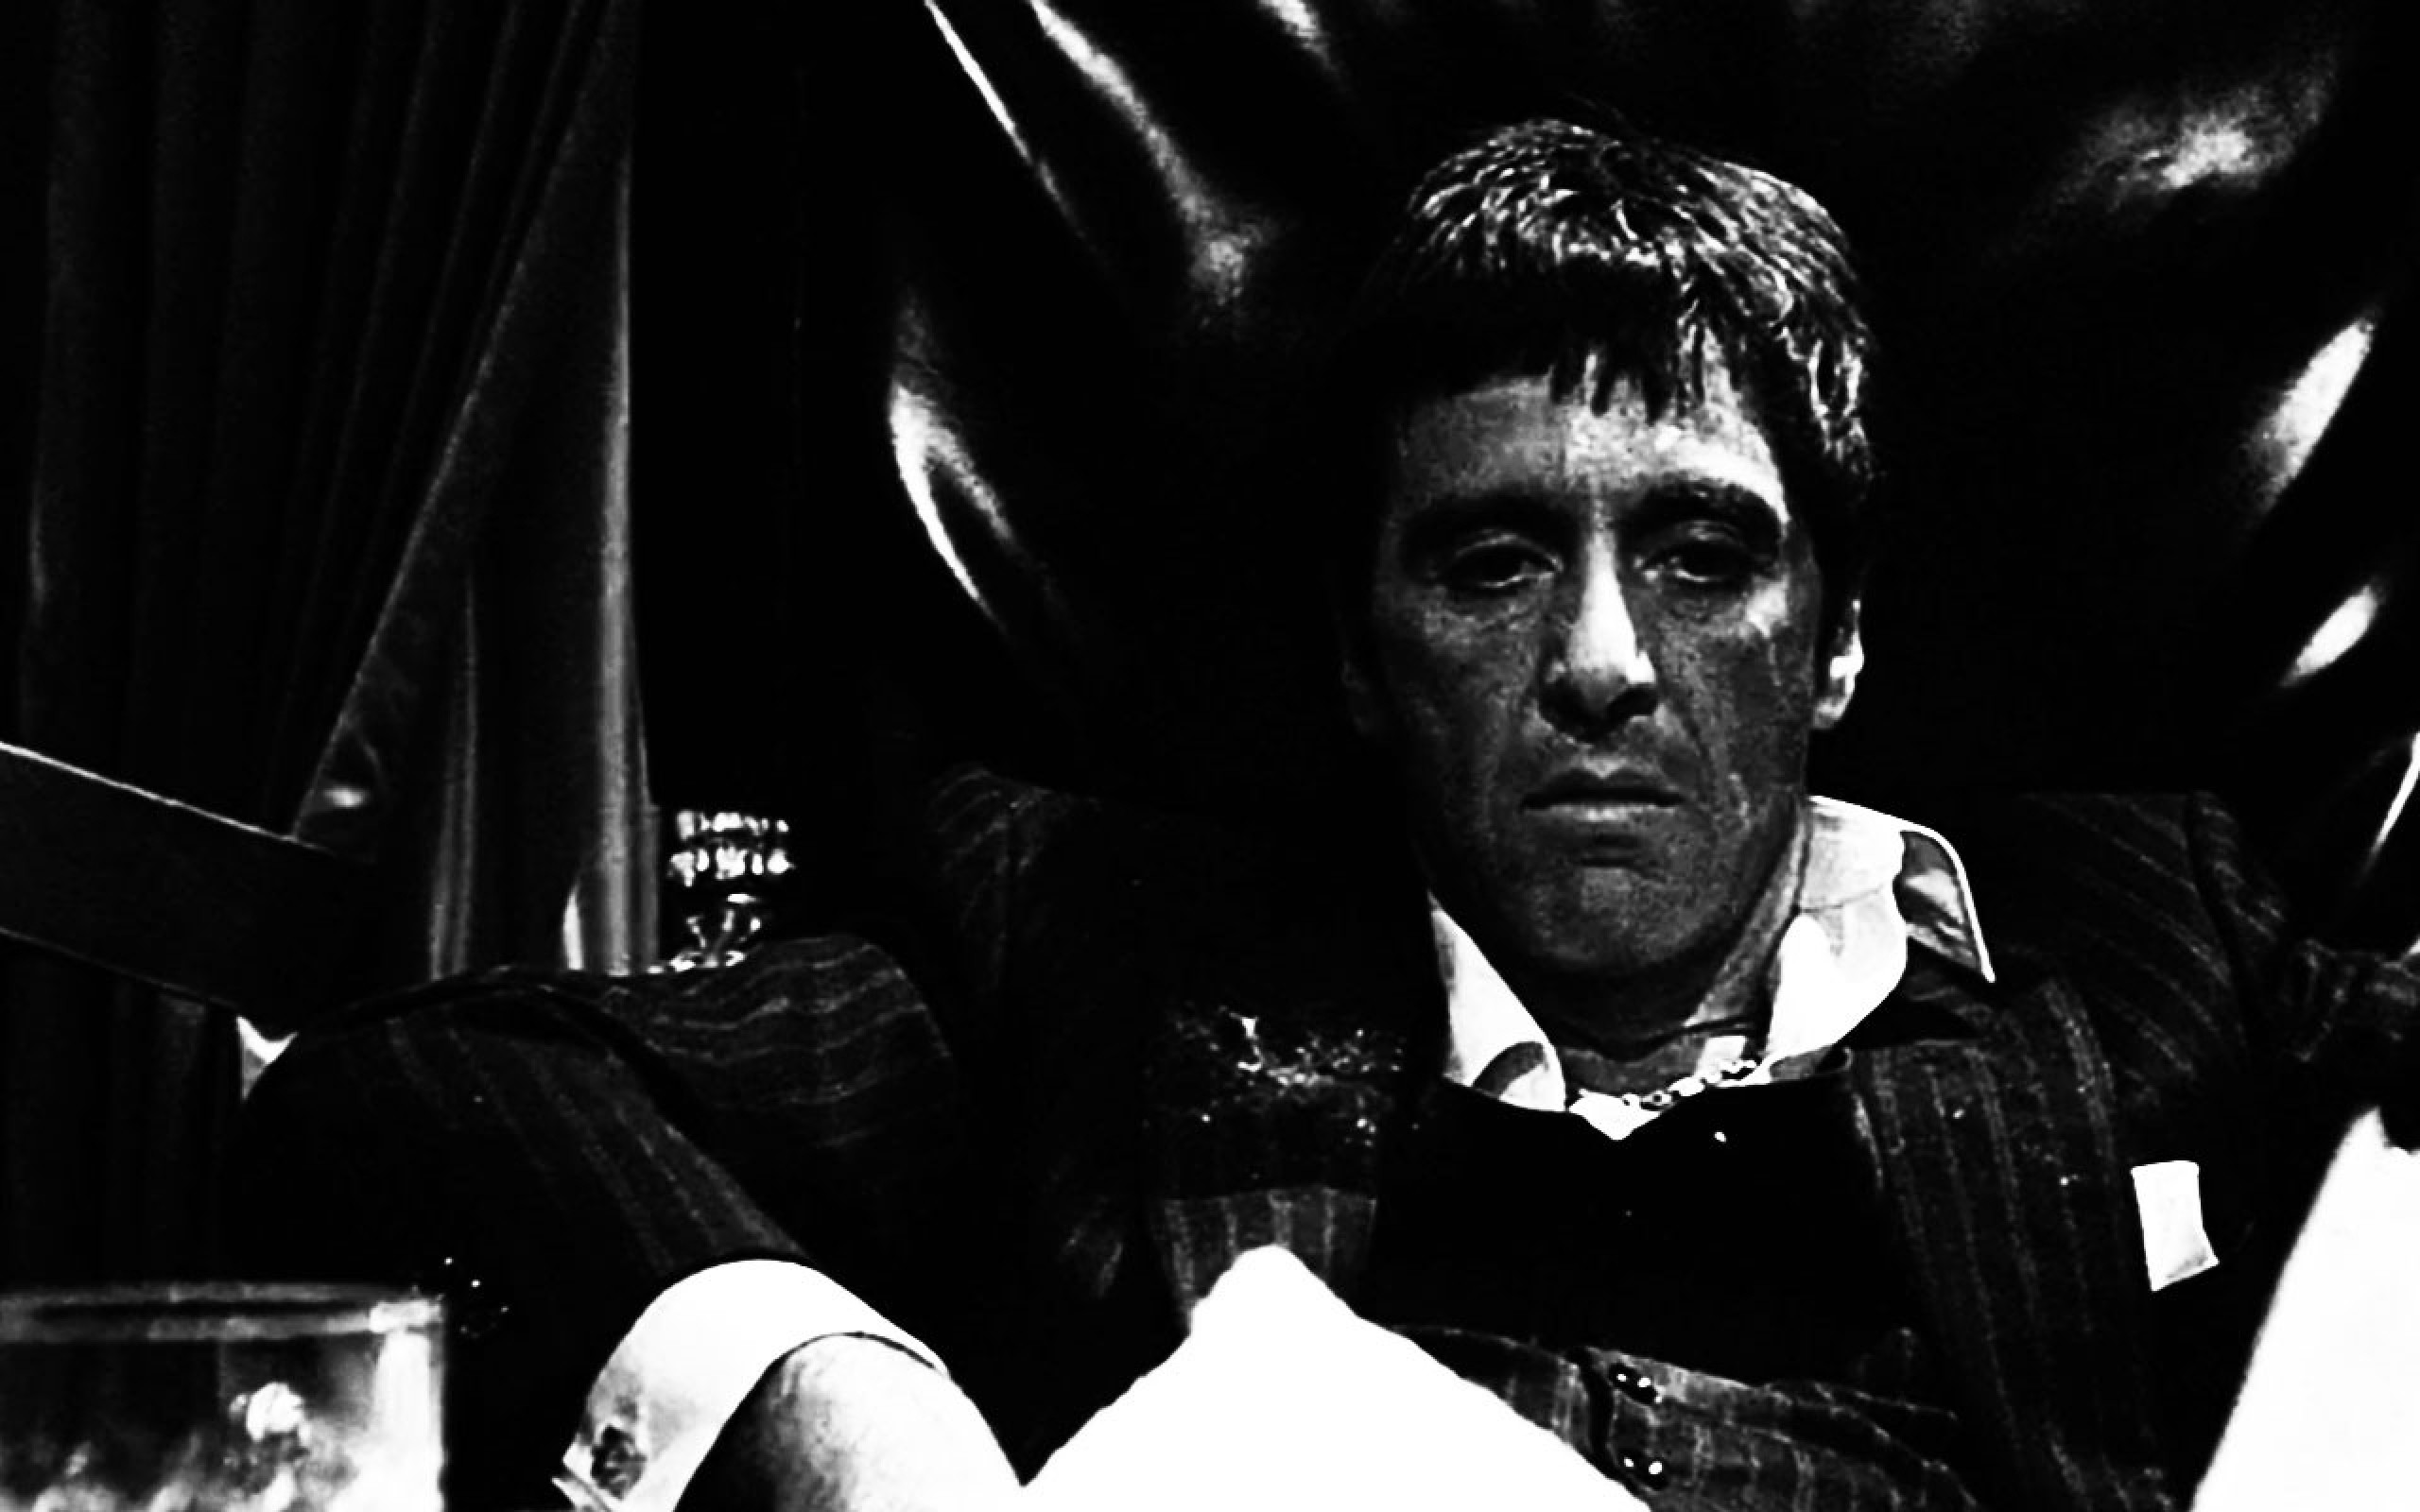 Scarface hd wallpaper 58 images - Scarface background ...